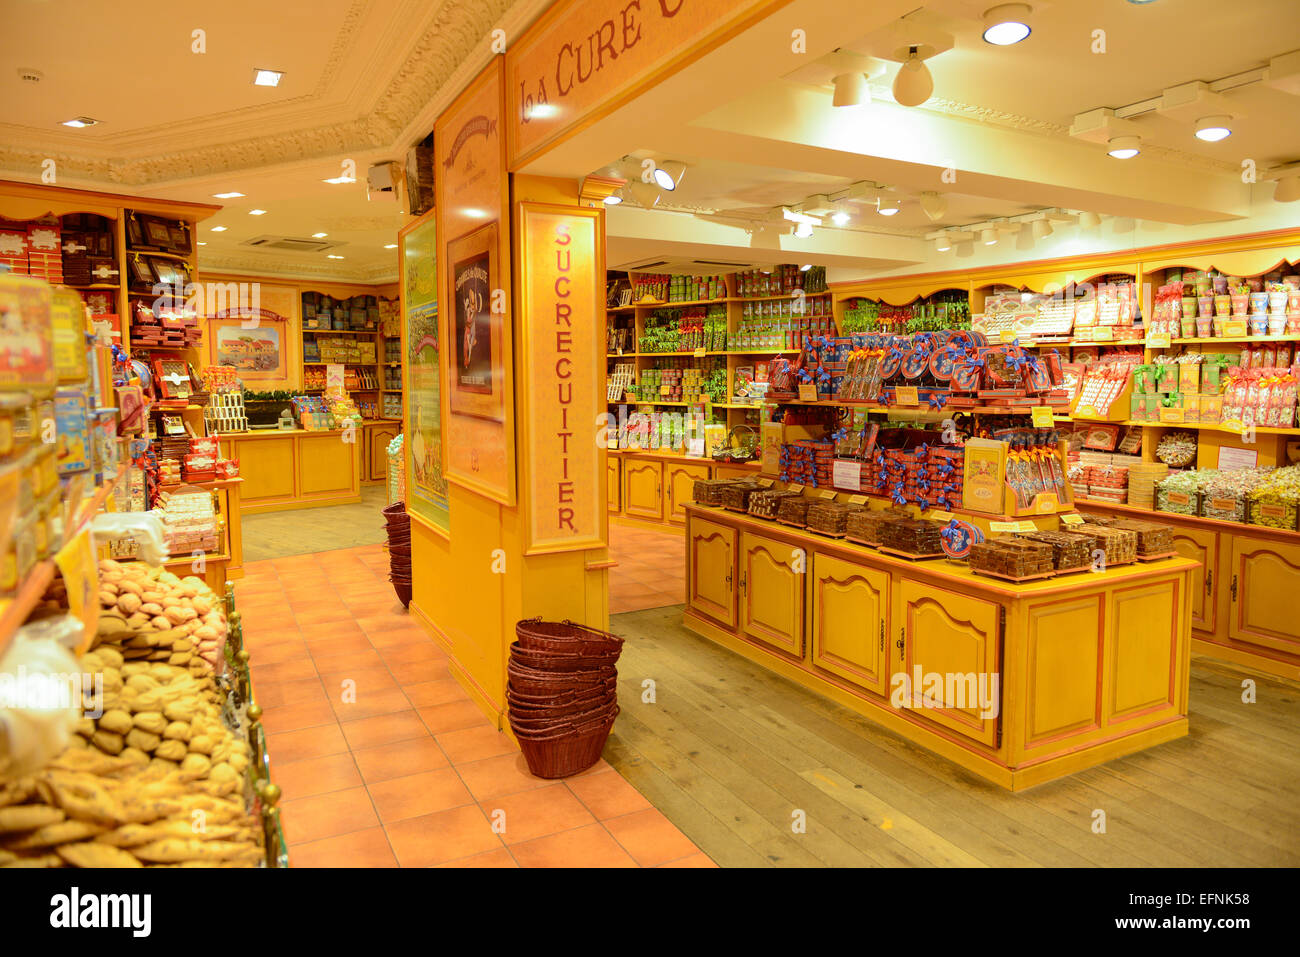 La Cure Gourmande Candy Shop in Brugge, Belgium - Stock Image